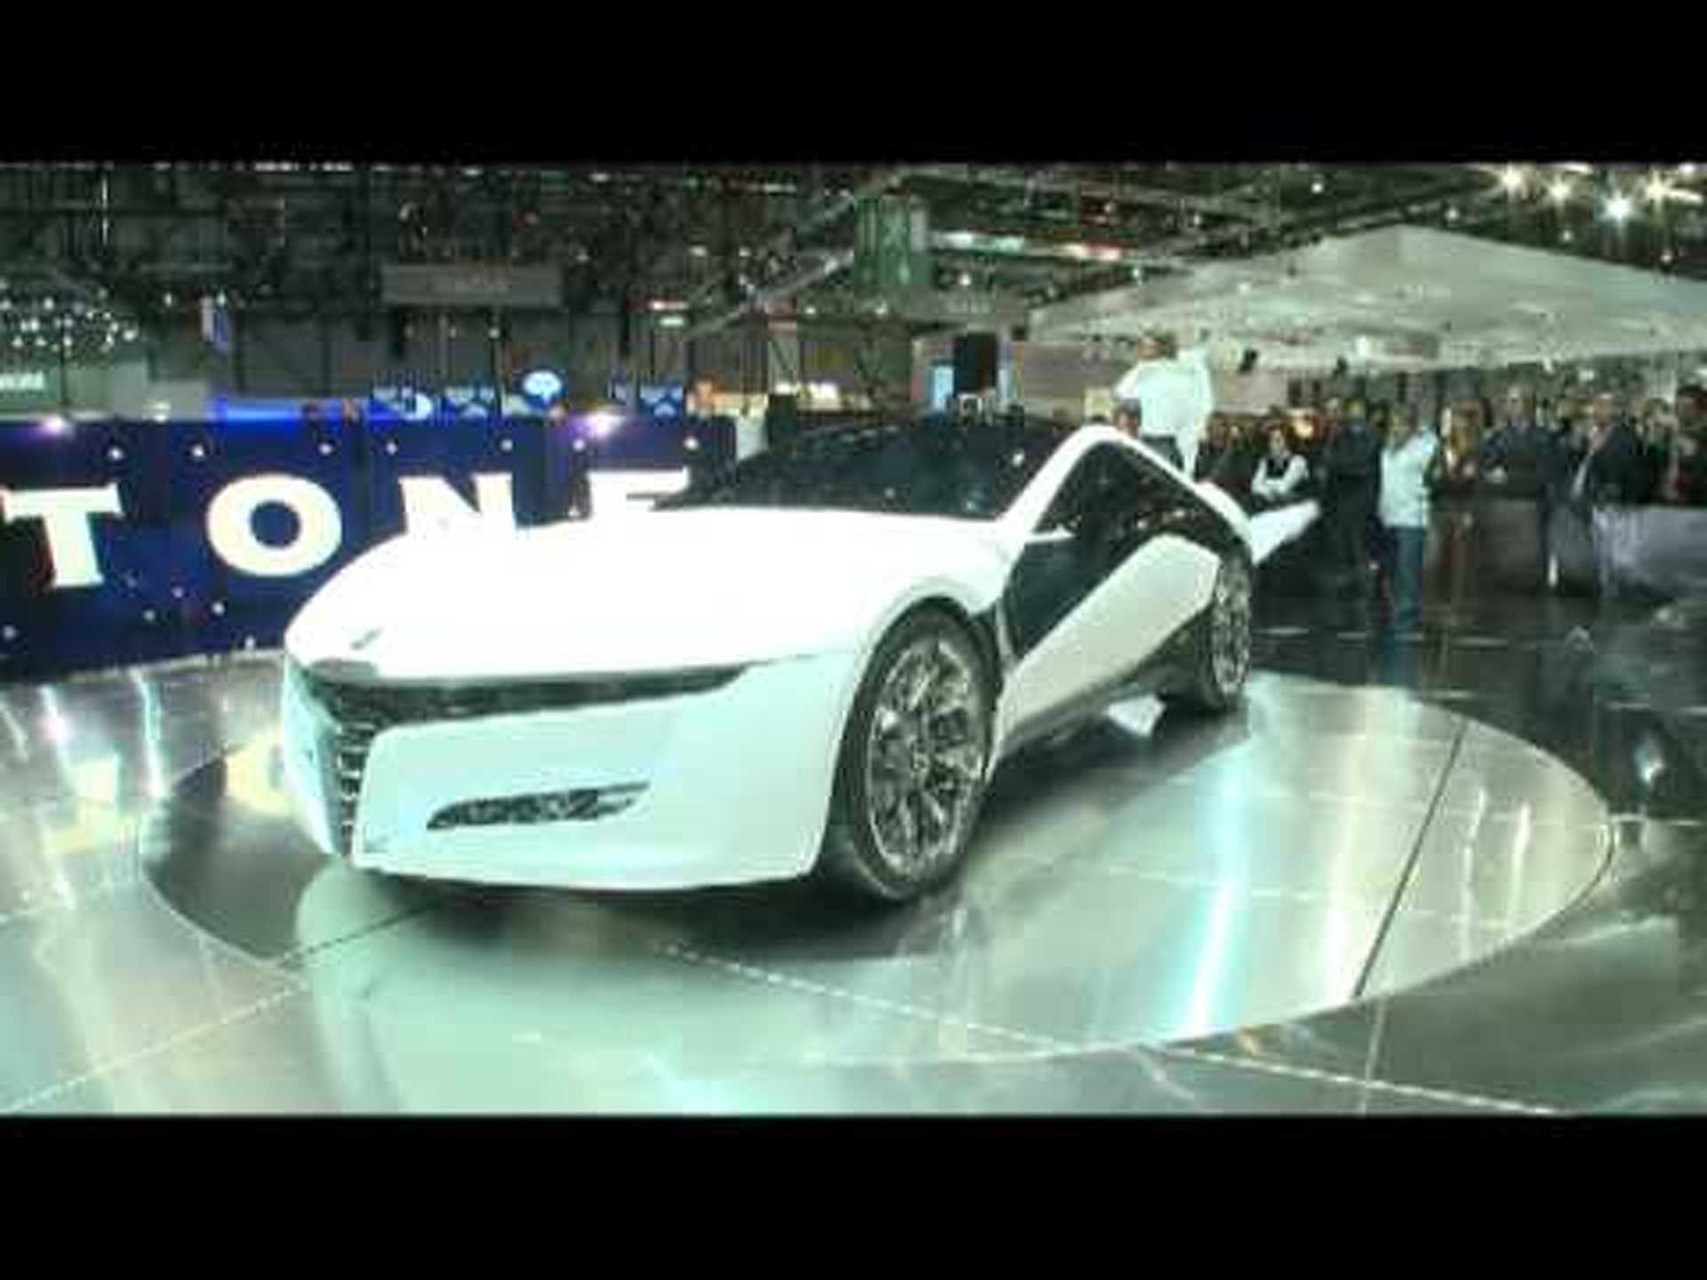 ItaliaspeedTV - 80th Geneva Motor Show: Bertone Press Conference & Premiere of the Pandion